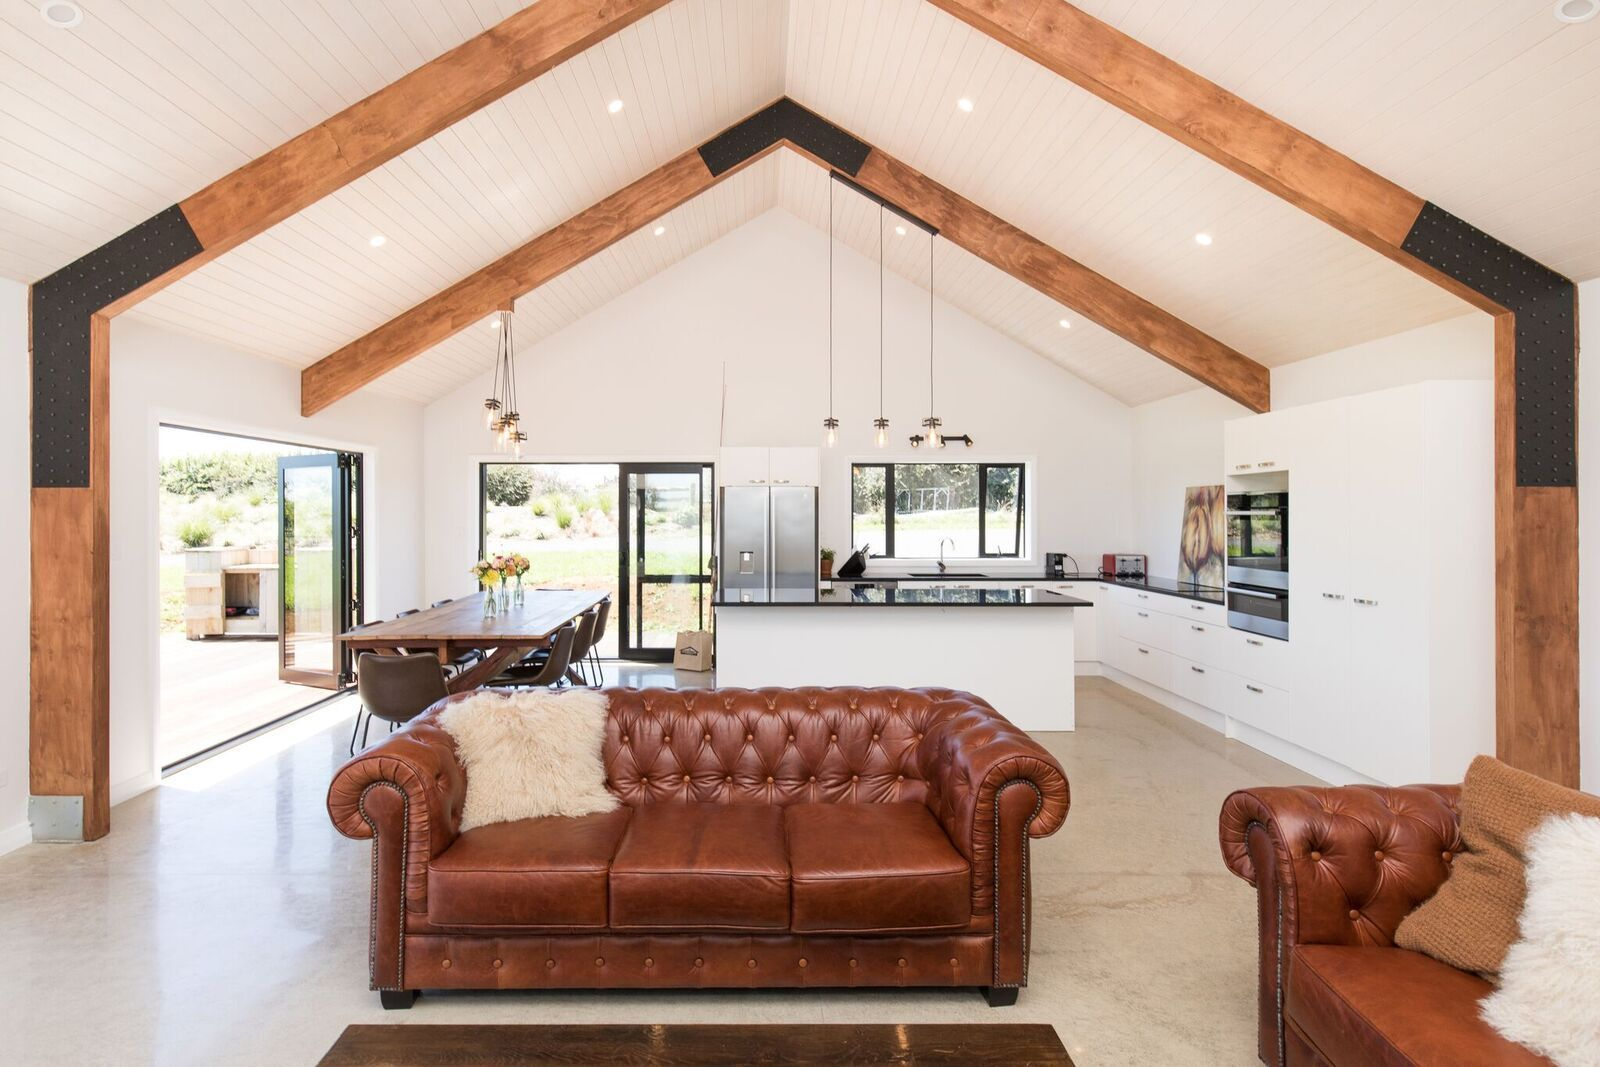 10 Cathedral Ceiling Design Ideas For Your Luxury Rooms Cathedral Ceiling Living Room Open Plan Kitchen Cathedral Ceiling